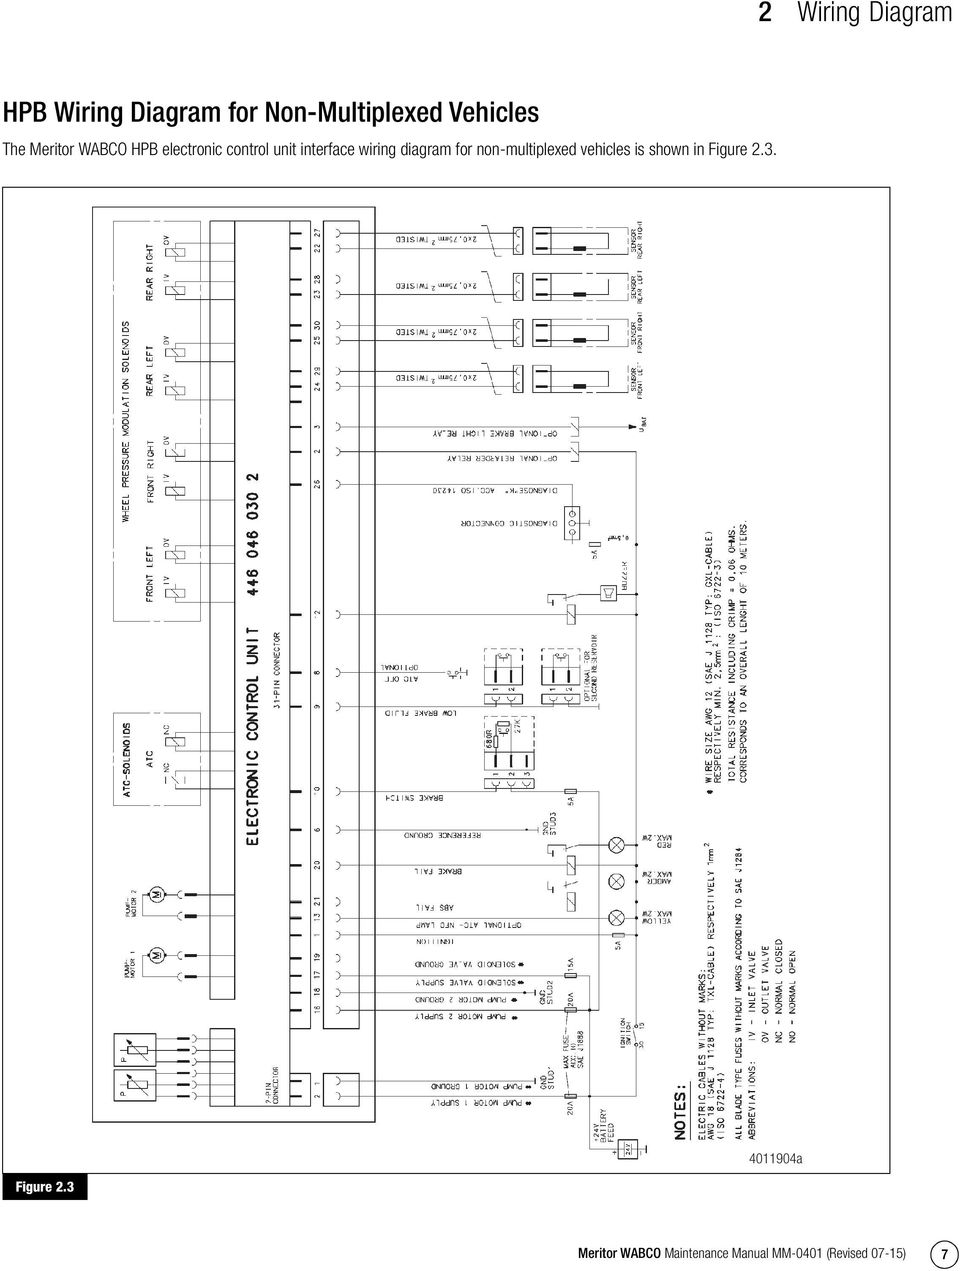 meritor wabco wiring diagram wiring diagram  wabco hydrolic wiring diagram wiring diagram databasemeritor wabco hydraulic power brake (hpb) system pdf